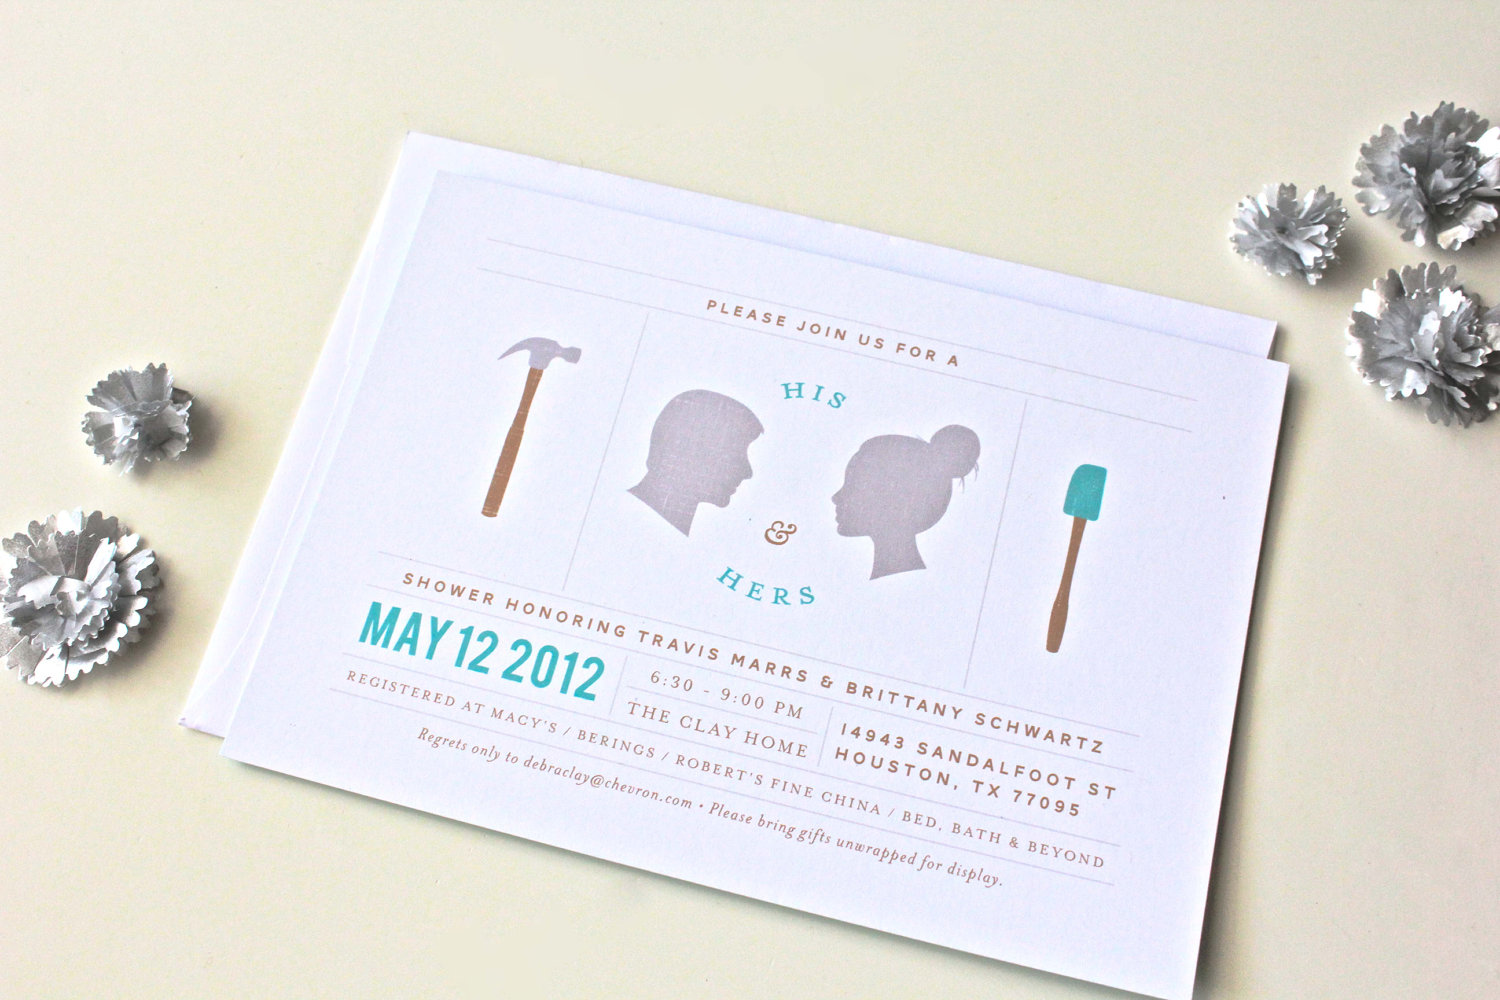 Wedding Shower Invitations For Couples: His And Hers Couples Wedding Shower Invitations